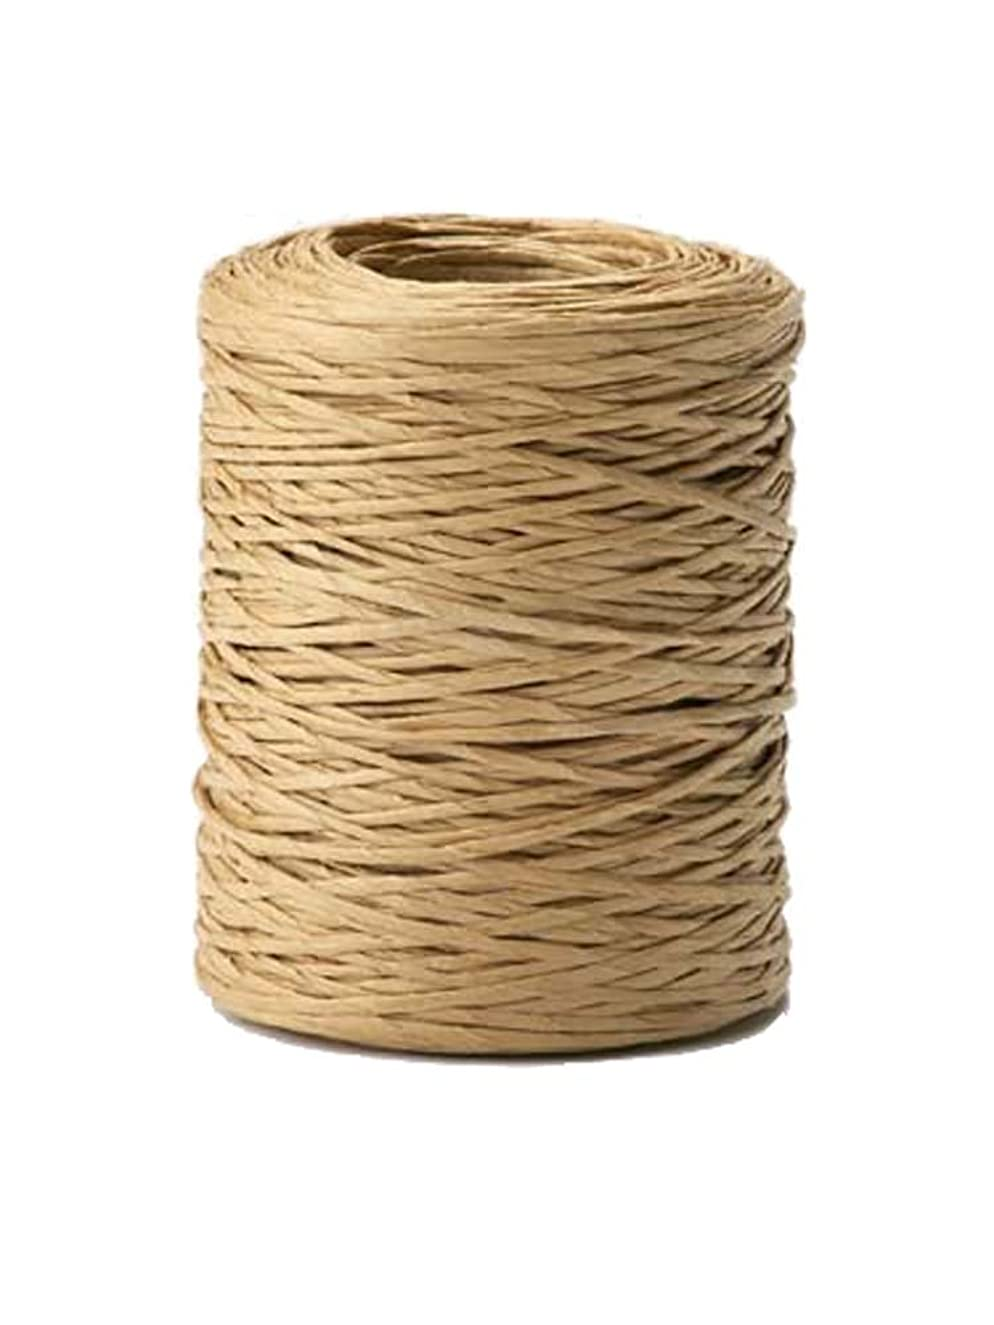 Oasis Bind Wire Natural, 673 feet, 26 gauge paper covered wire